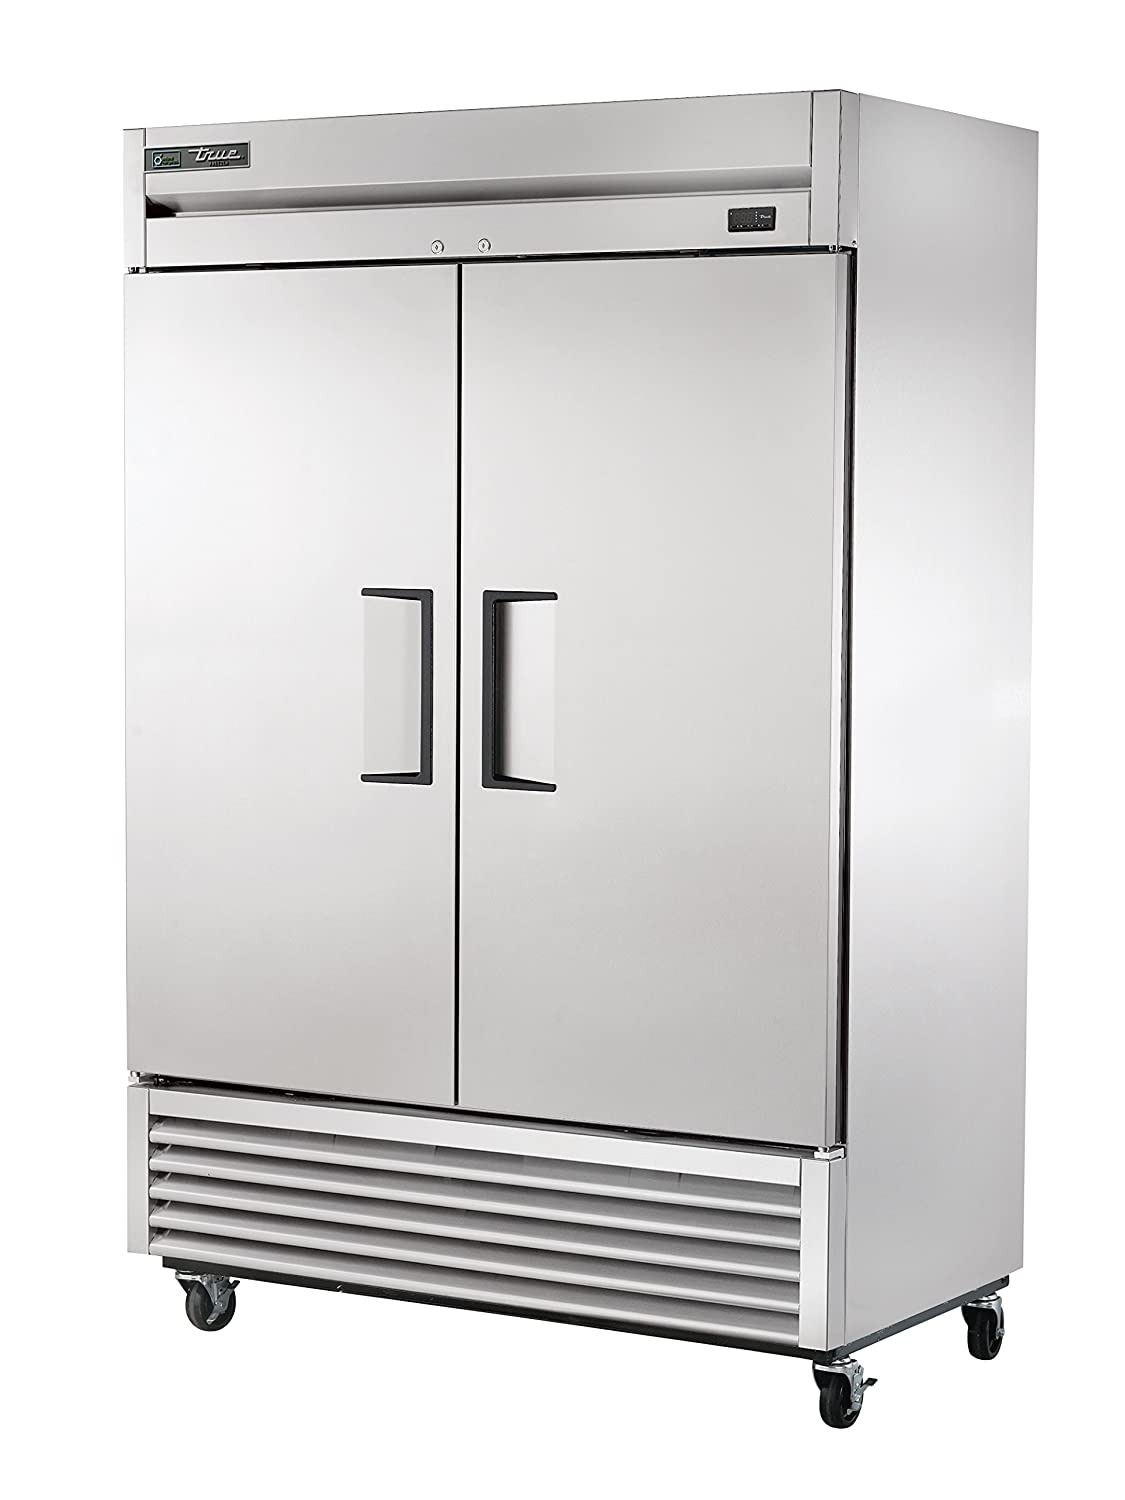 "True T-49F-HC Reach-in Solid Swing Door Freezer with Hydrocarbon Refrigerant, Holds -10 Degree F, 78.625"" Height, 29.875"" Width, 54.125"" Length"